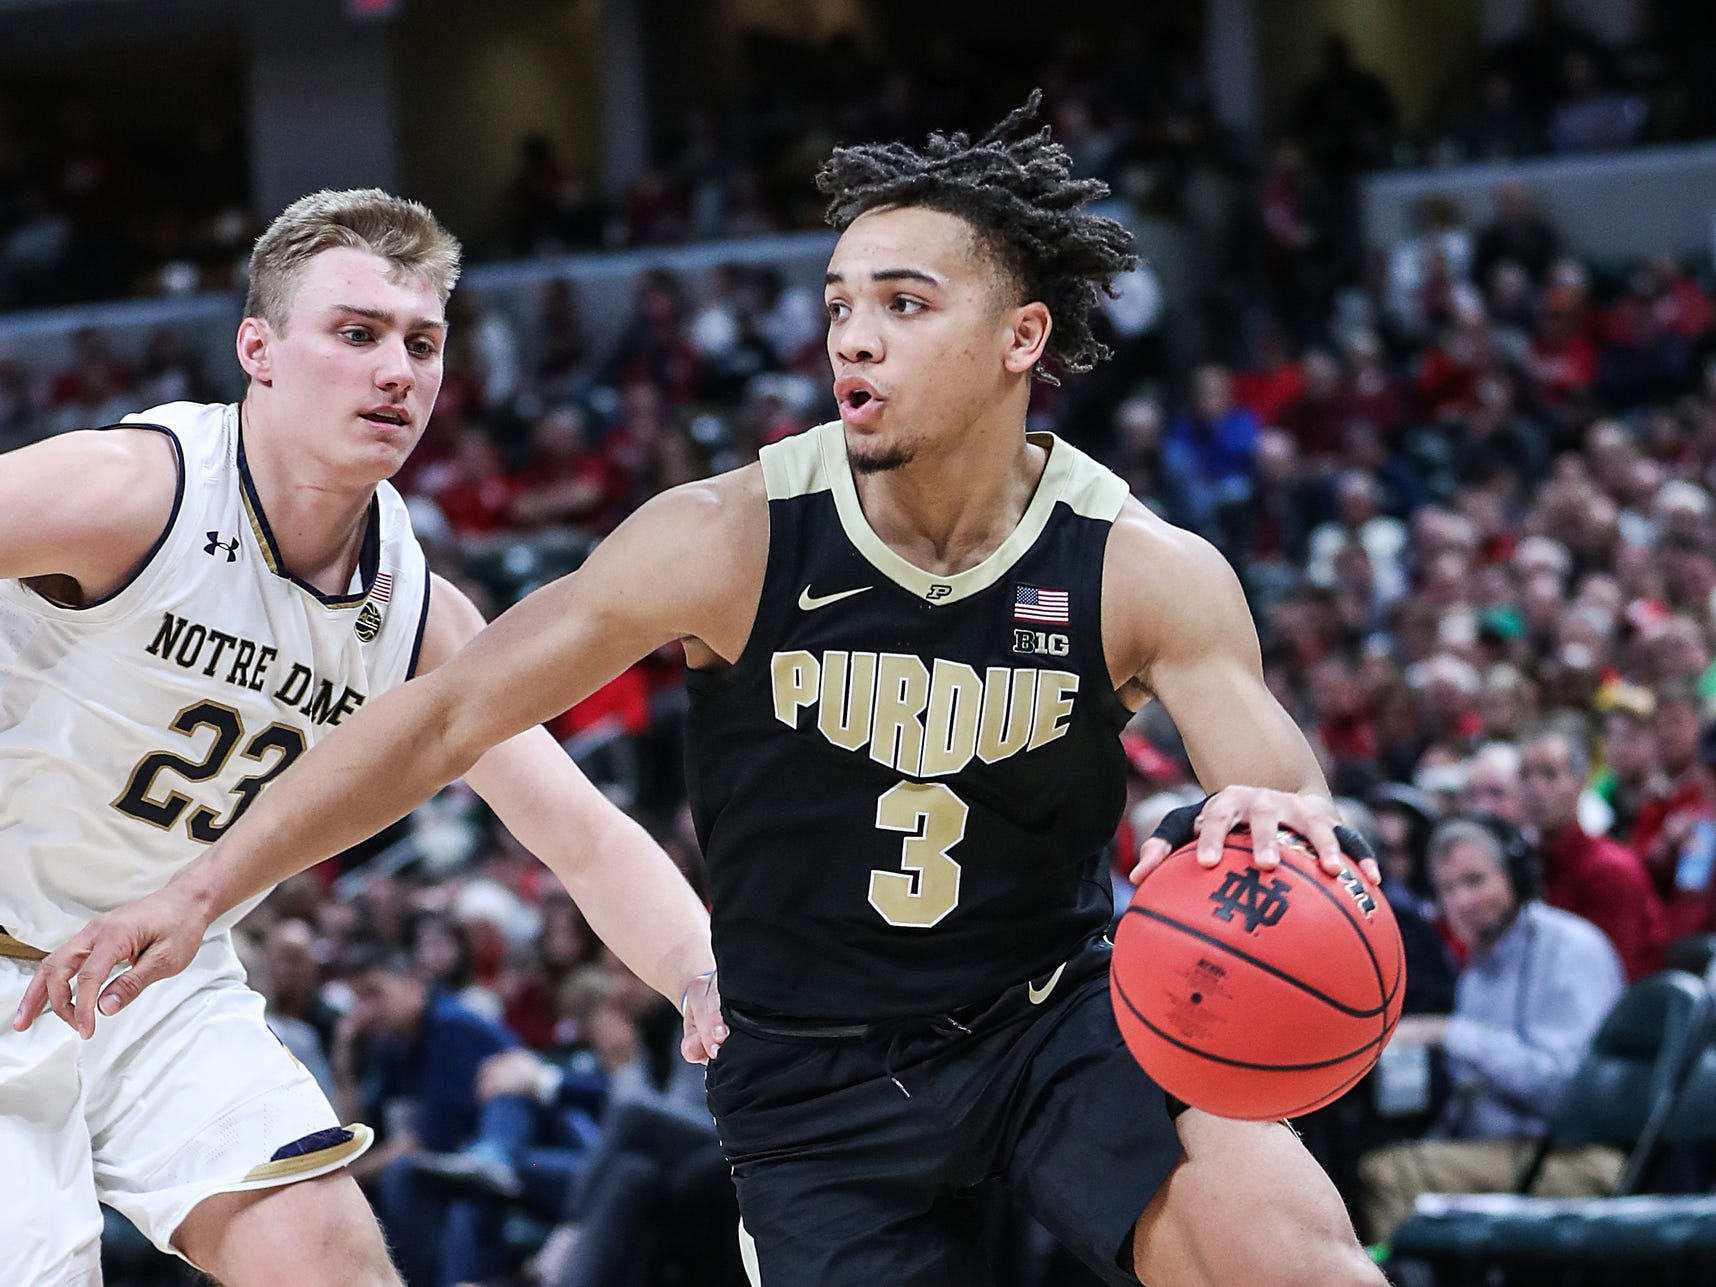 Purdue guard Carsen Edwards scored 27 points, but didn't get much help.